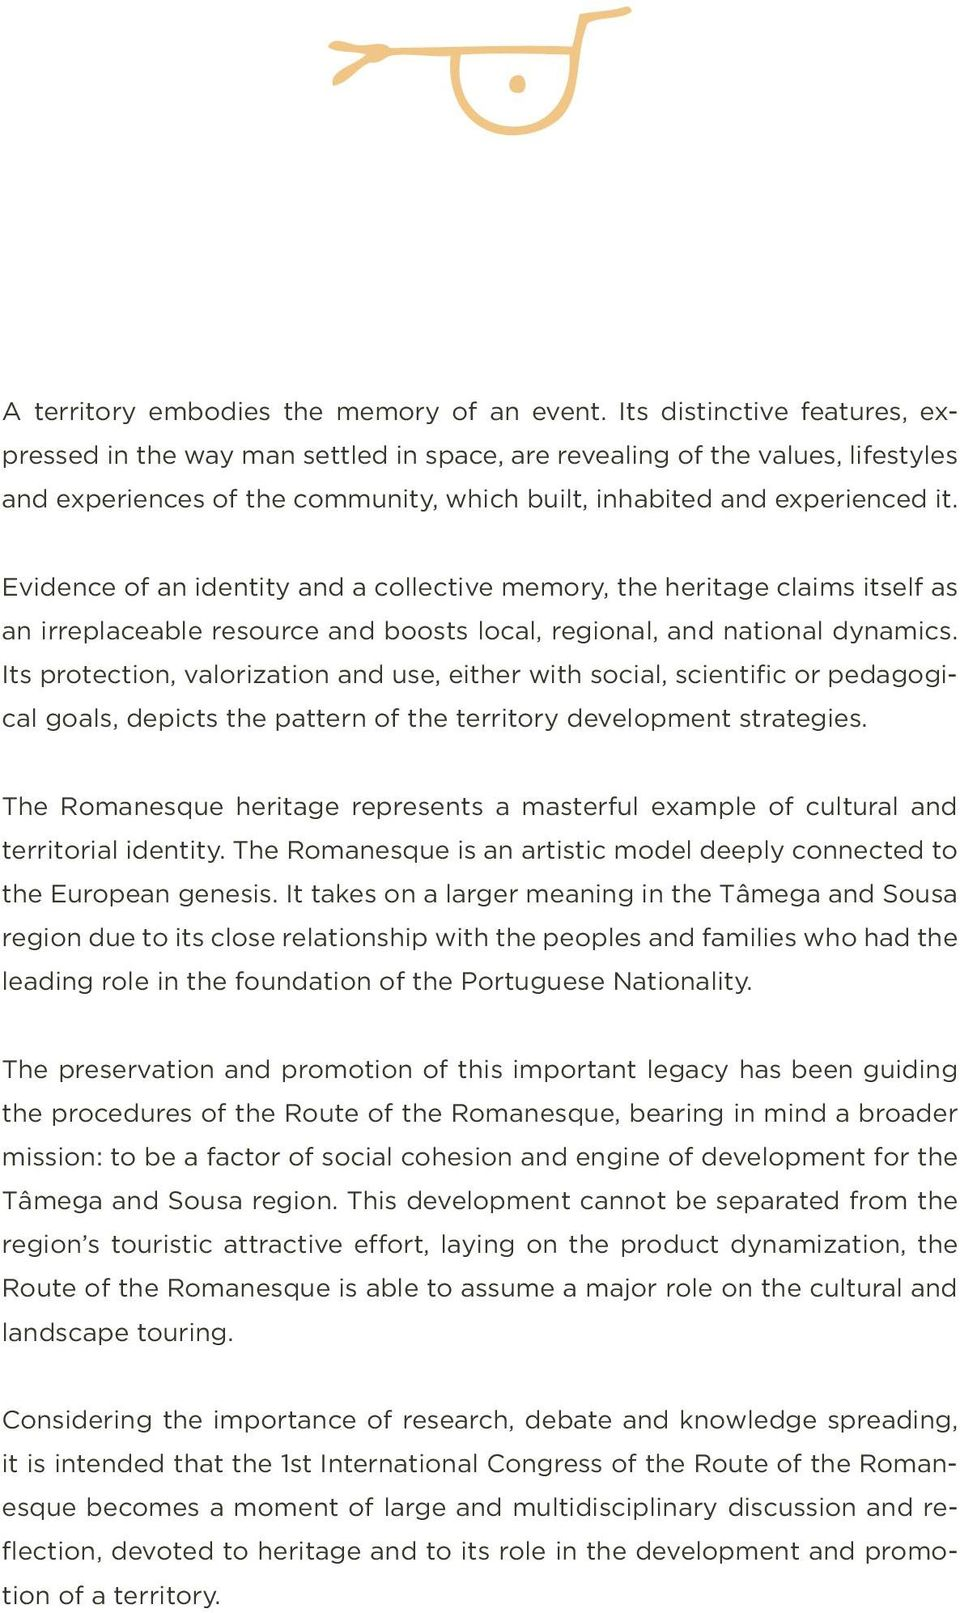 Evidence of an identity and a collective memory, the heritage claims itself as an irreplaceable resource and boosts local, regional, and national dynamics.